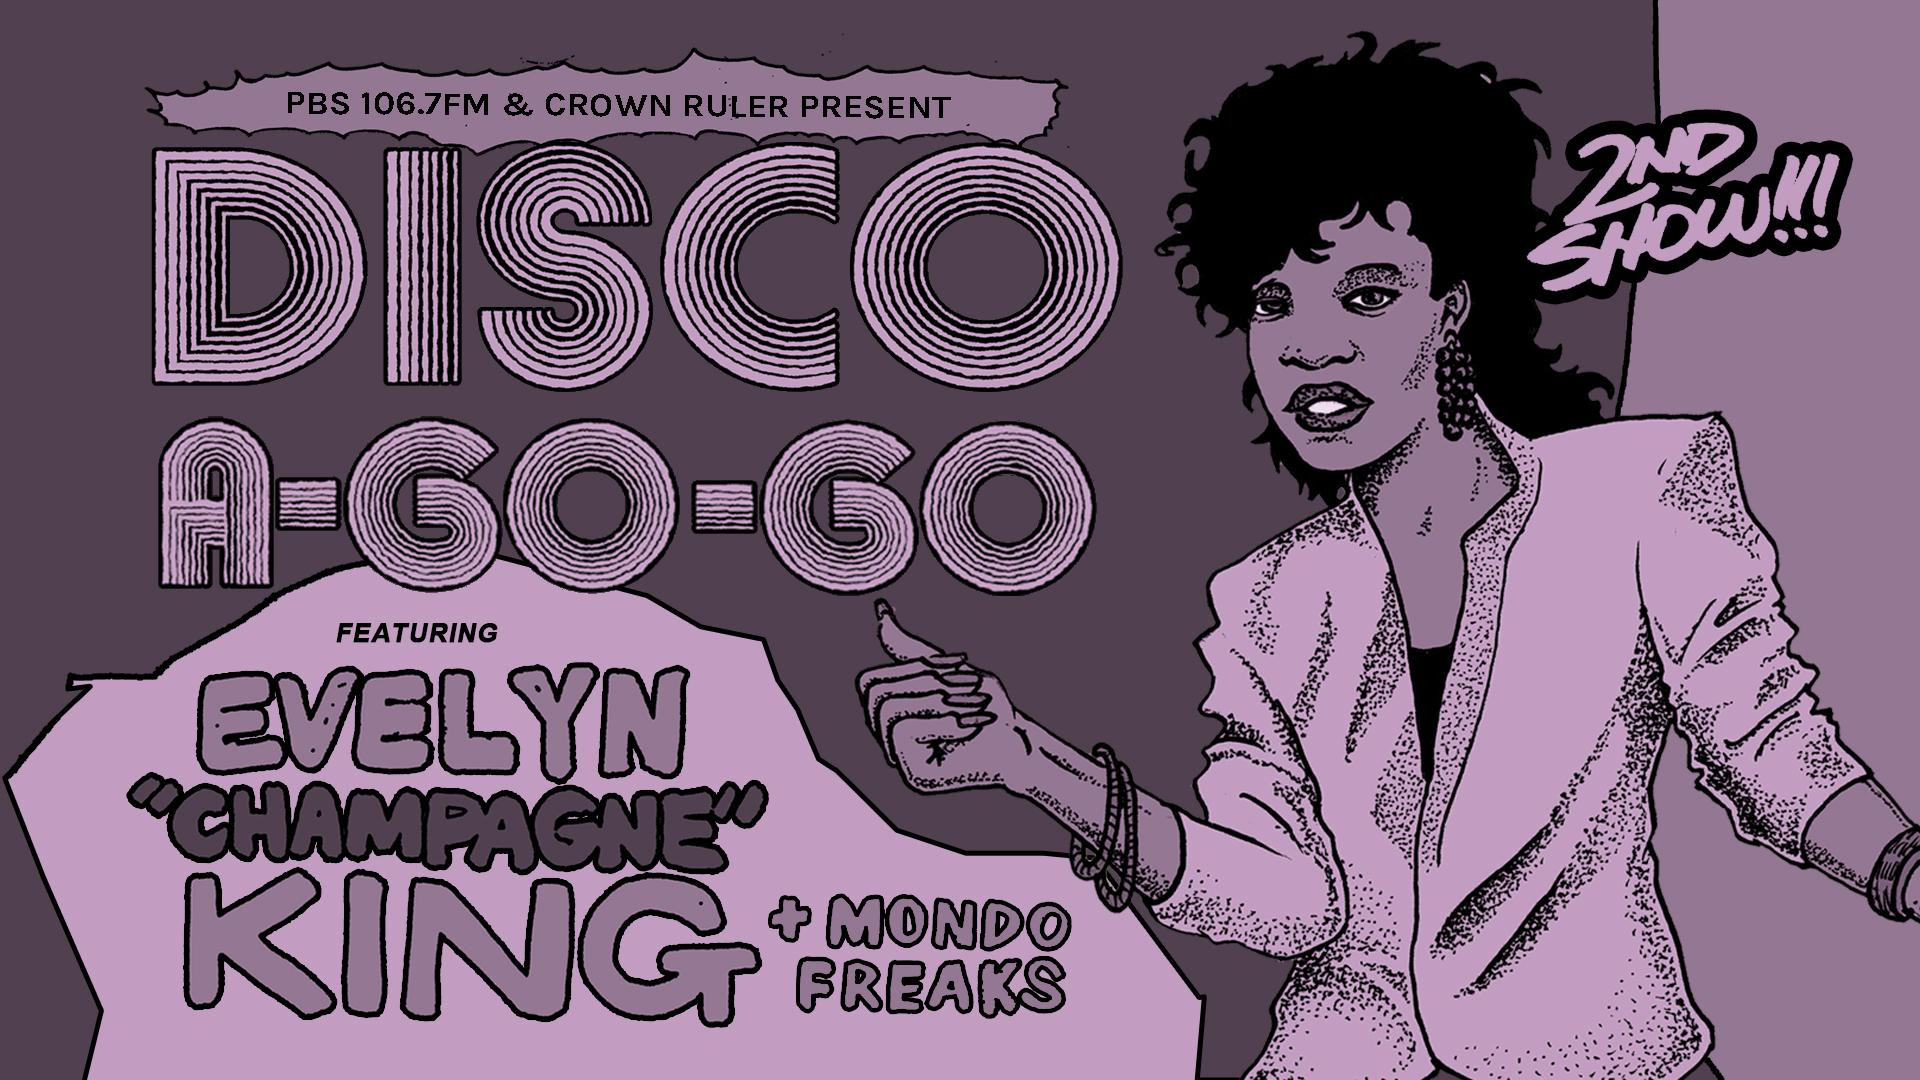 2nd Show! Disco A-Go-Go ft. Evelyn Champagne King with Mondo Freaks